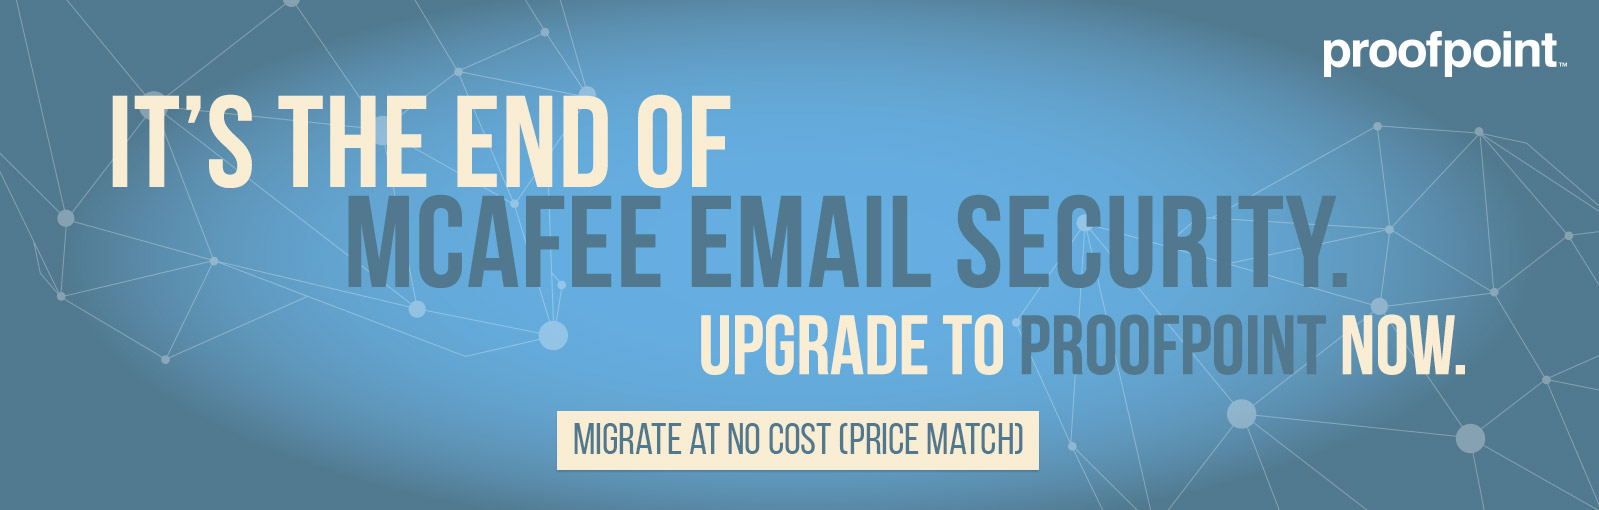 Proofpoint-McAfee-web-banner-1599x510-B (002)